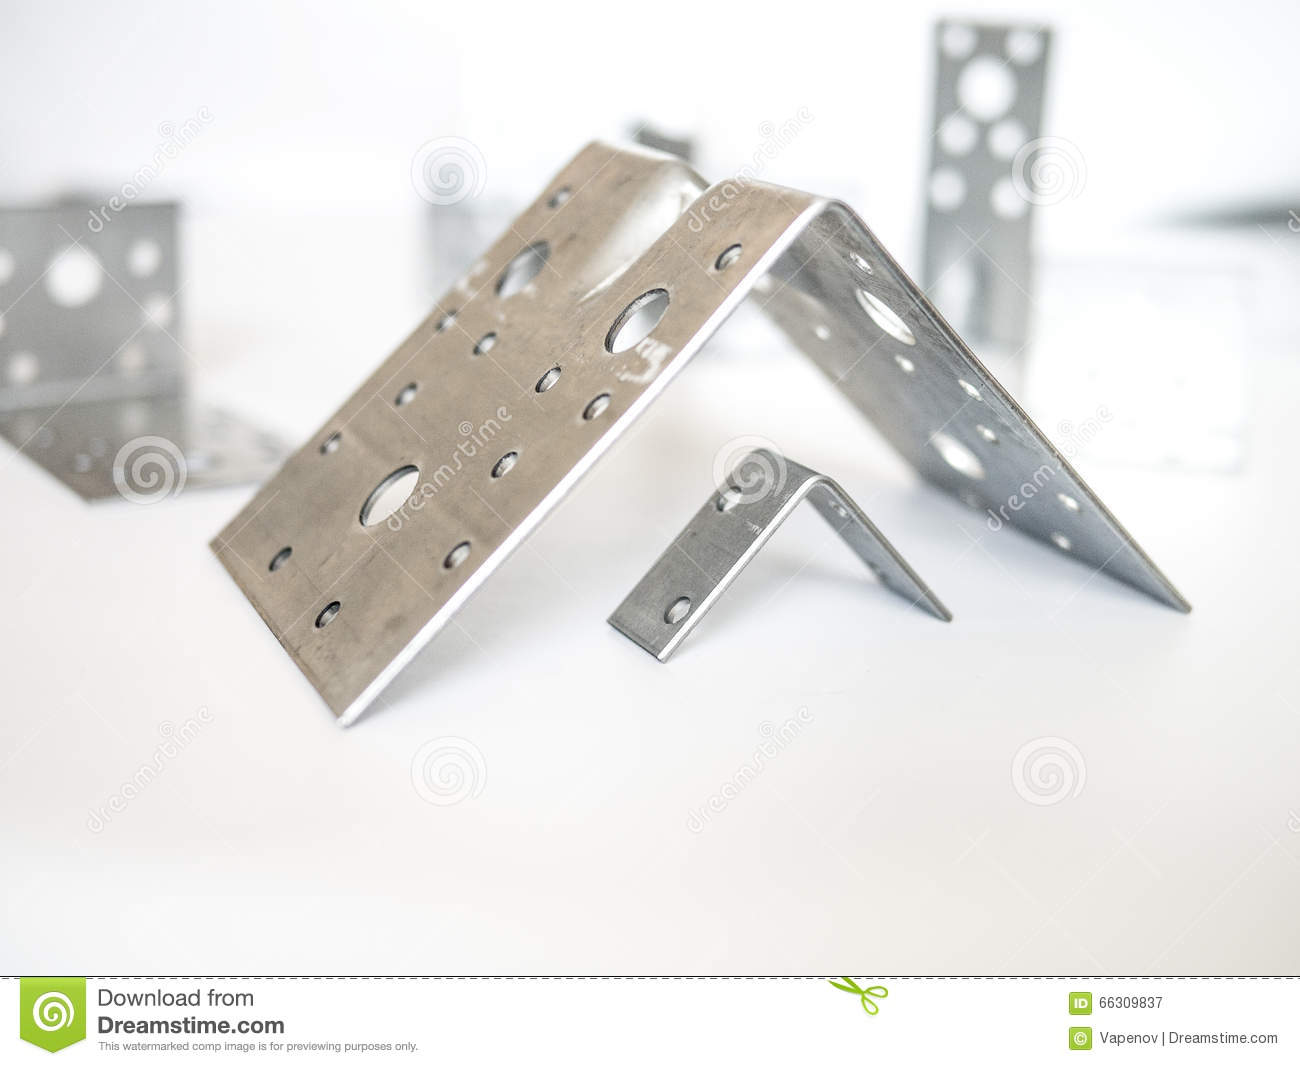 Perforated fasteners 61